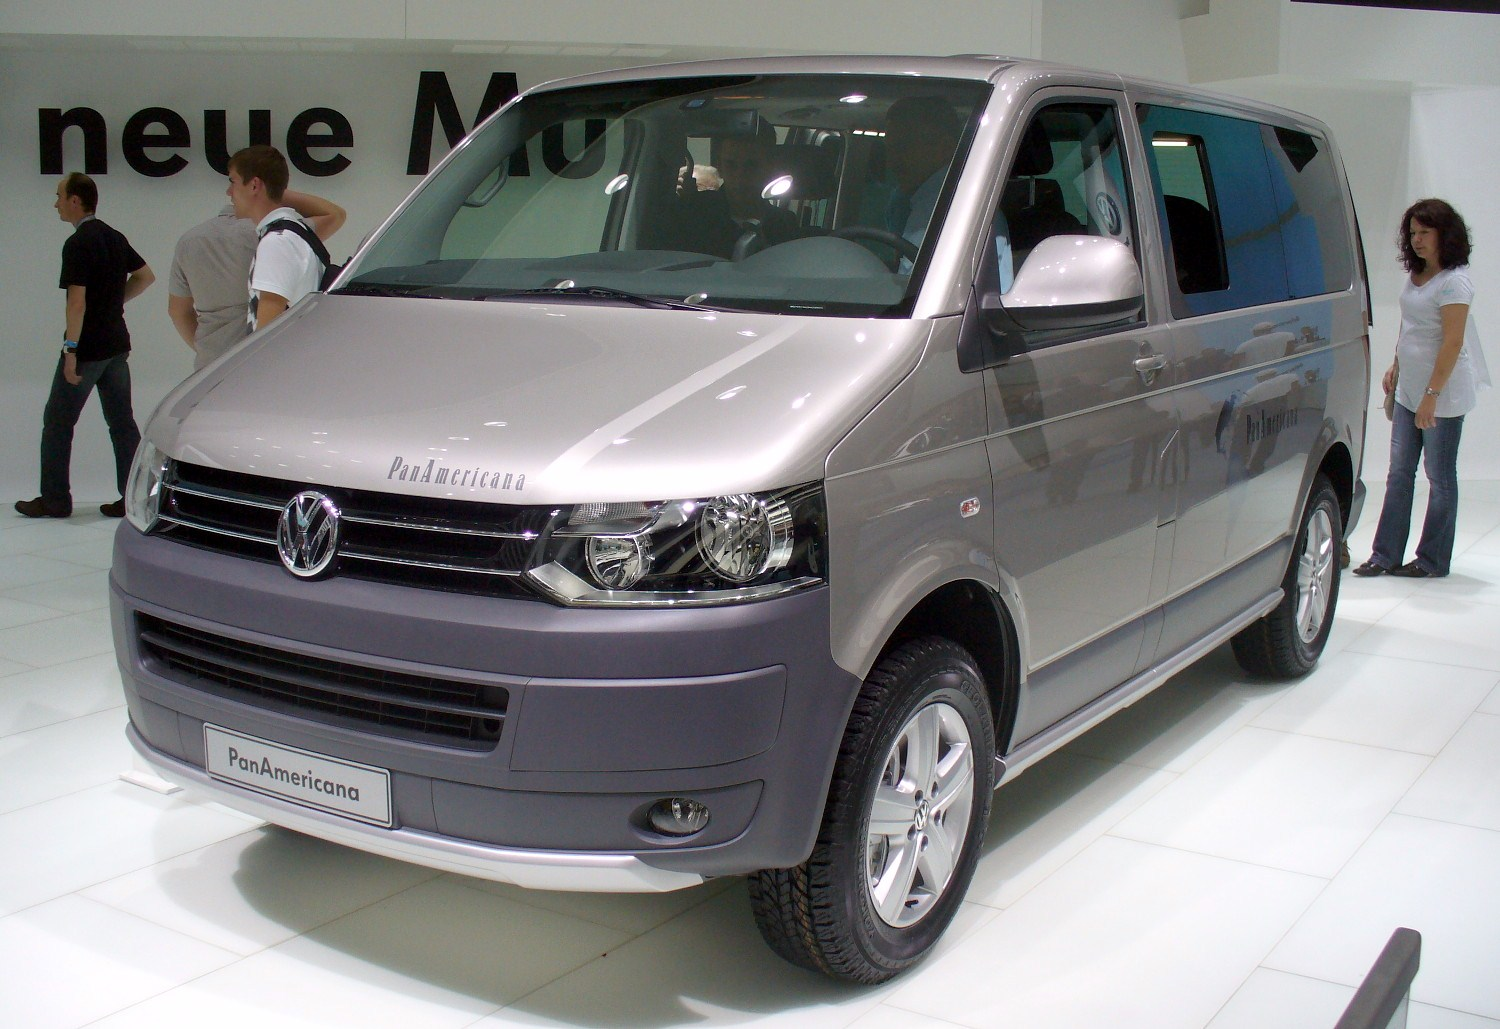 file vw t5 panamericana facelift jpg wikipedia. Black Bedroom Furniture Sets. Home Design Ideas